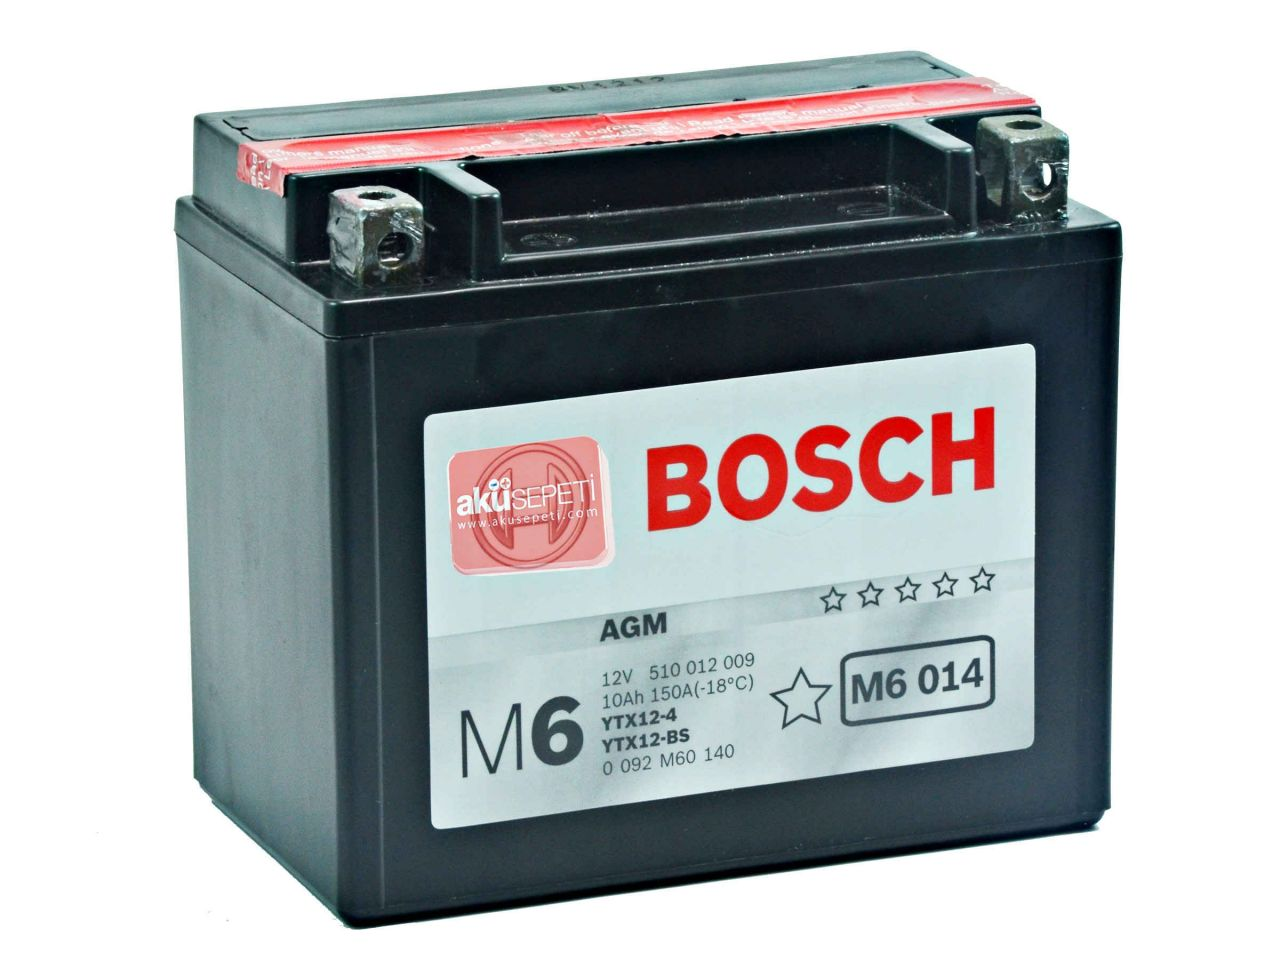 Bosch 12v 10 ah bal motor akkumul tor for Bosch electric motors 12v